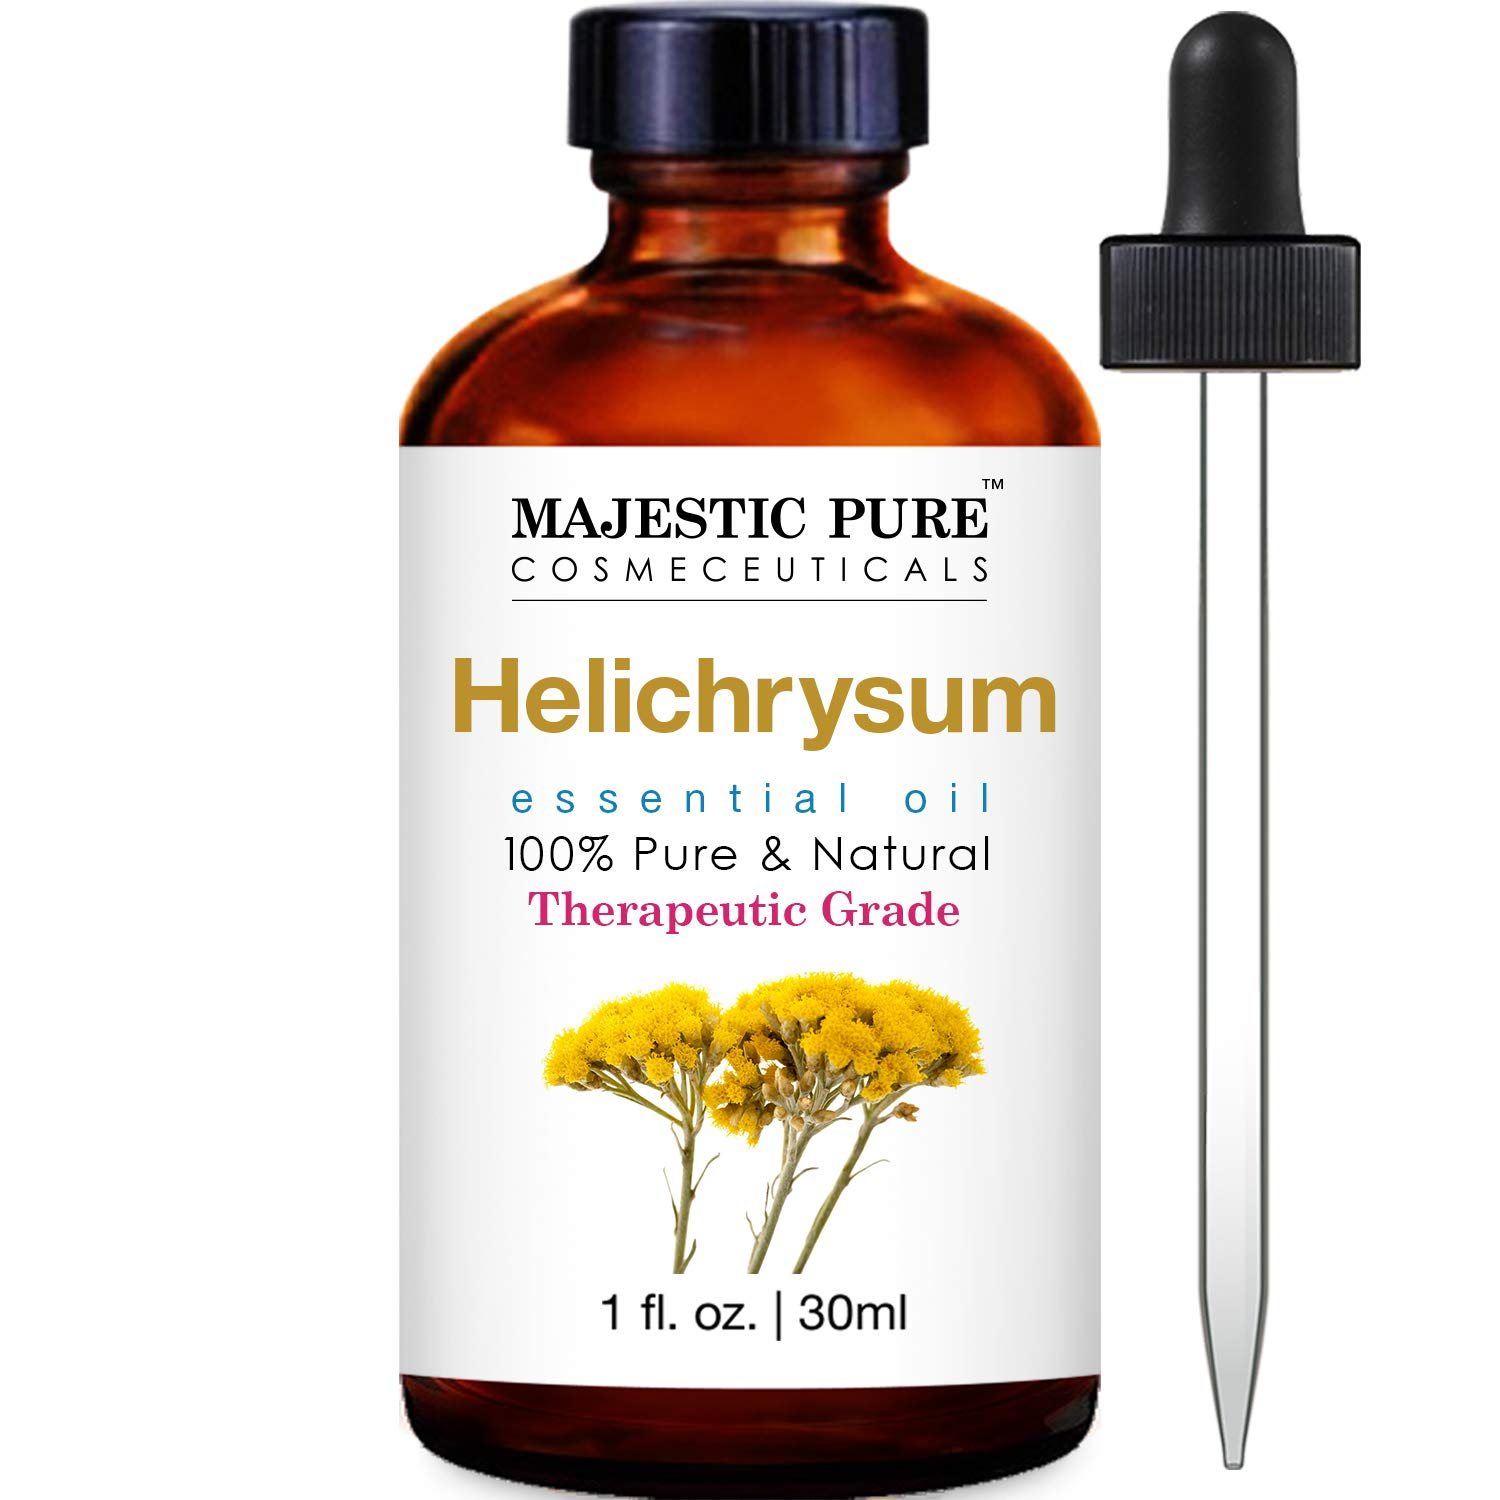 MAJESTIC PURE Helichrysum Oil, Highest Quality Therapeutic Grade Essential Oil, 1 fl oz